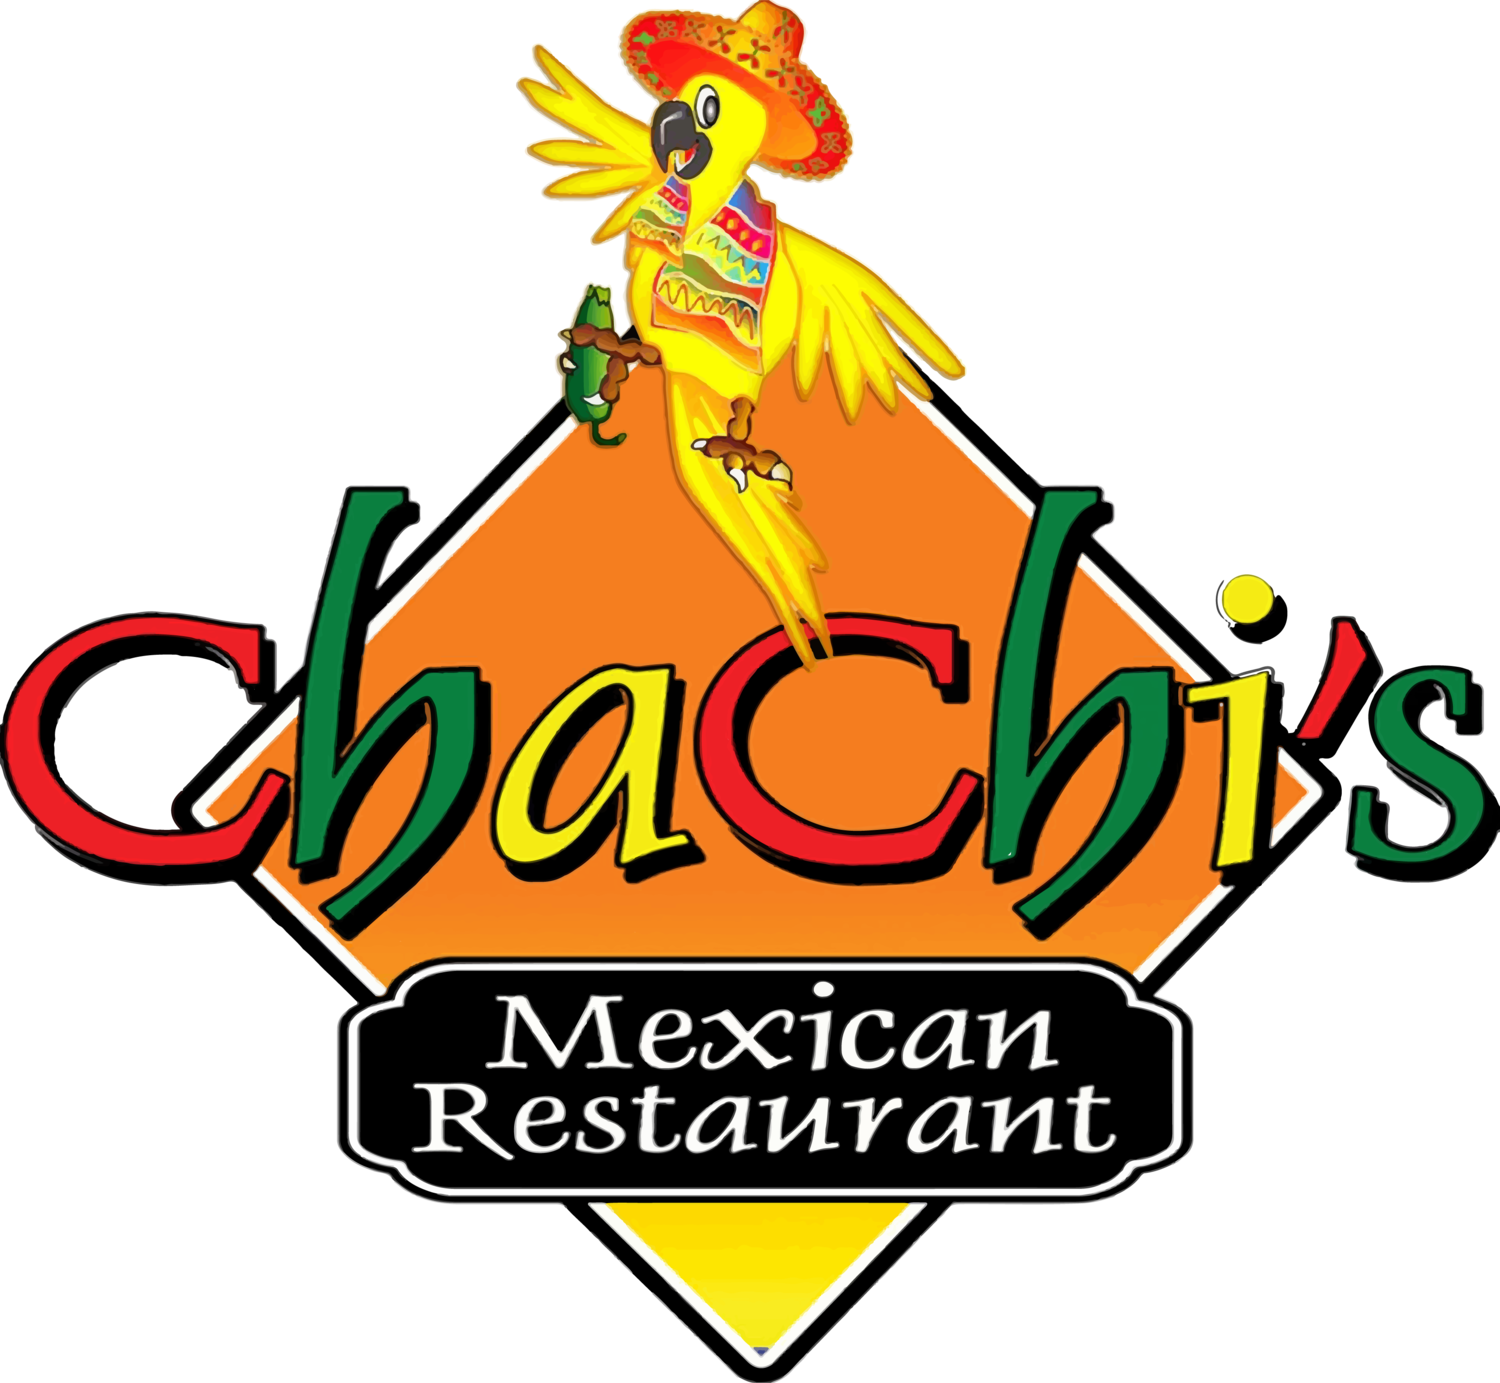 Special clipart restaurant mexican. Chachis